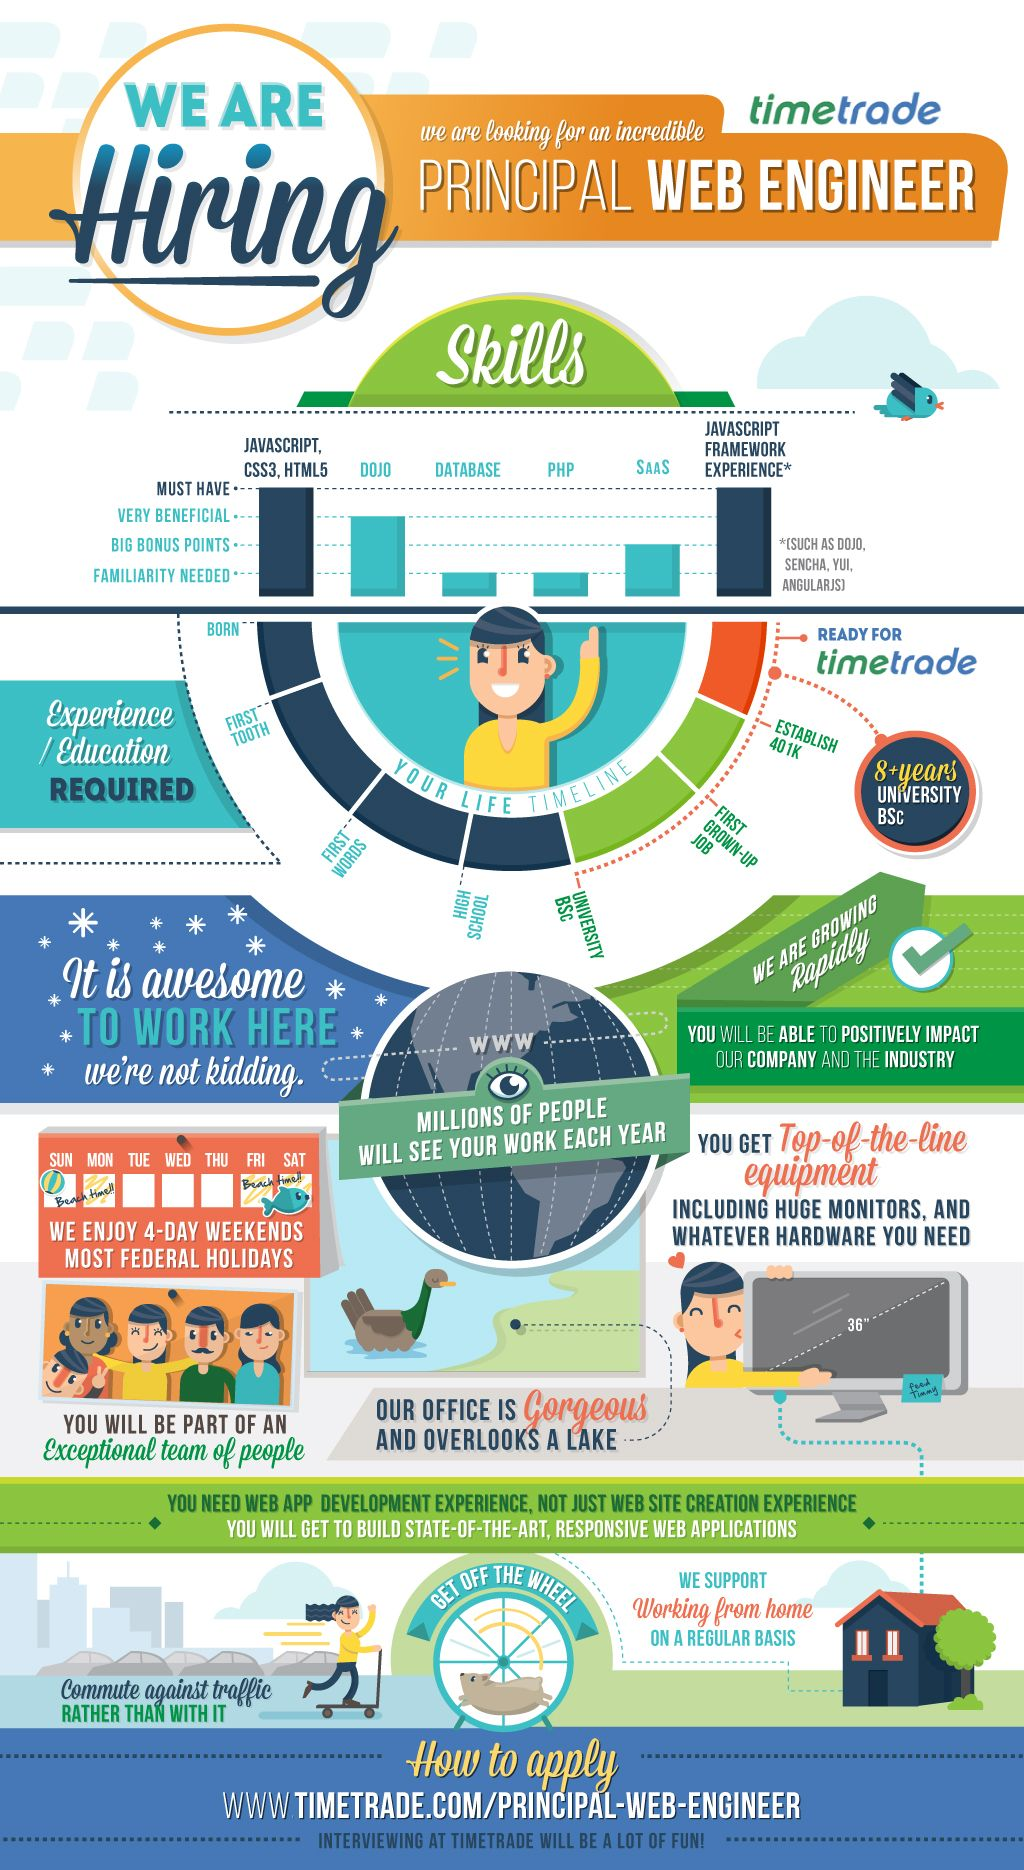 Infographic Design By Flupito Infographic Hiring Jobs